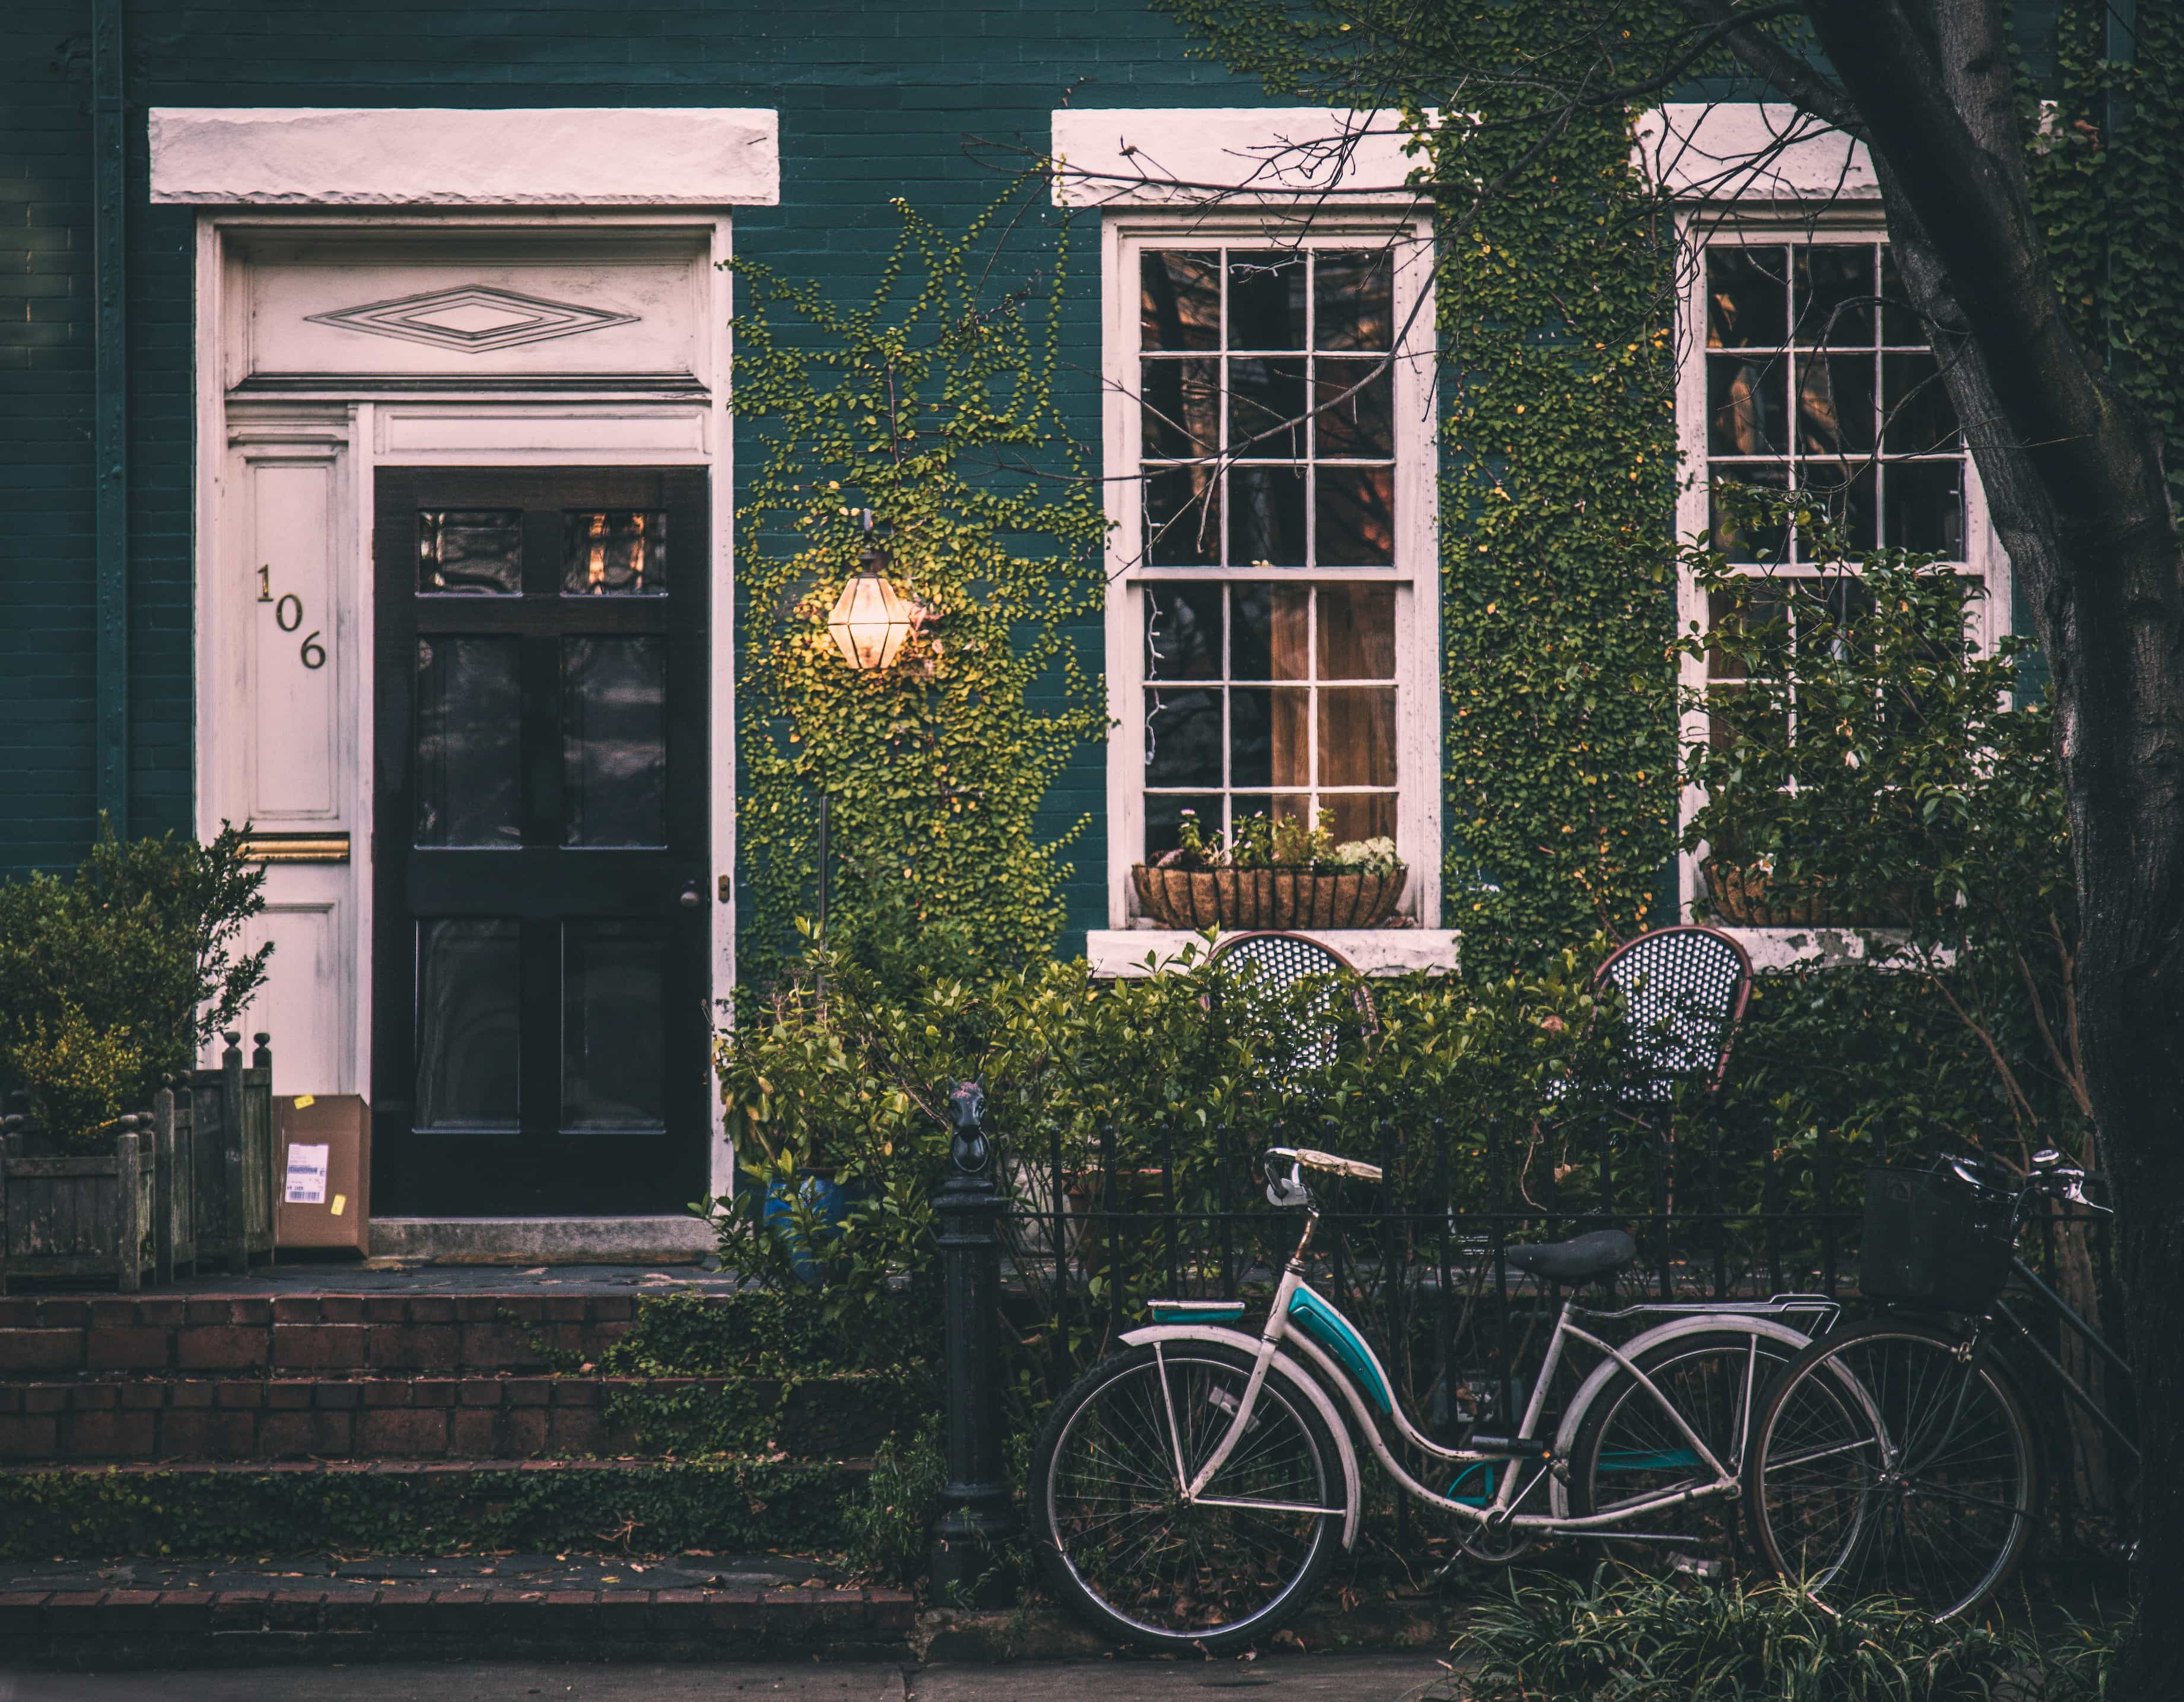 Small house exterior with shrubberies and bicycle